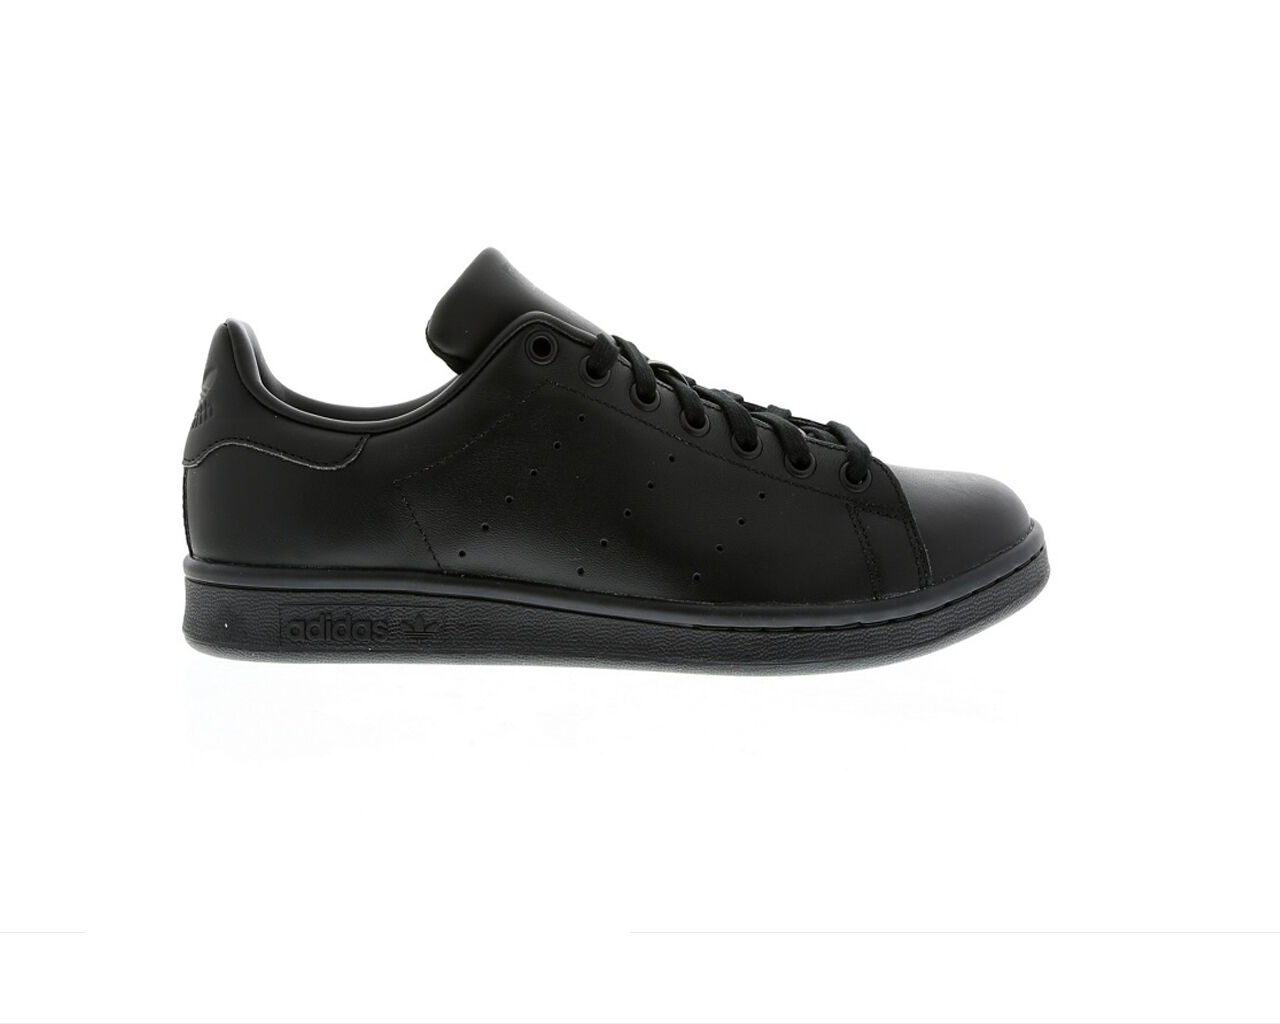 ORIGINAL ADIDAS STAN SMITH LEATHER Noir TRAINERS M20327